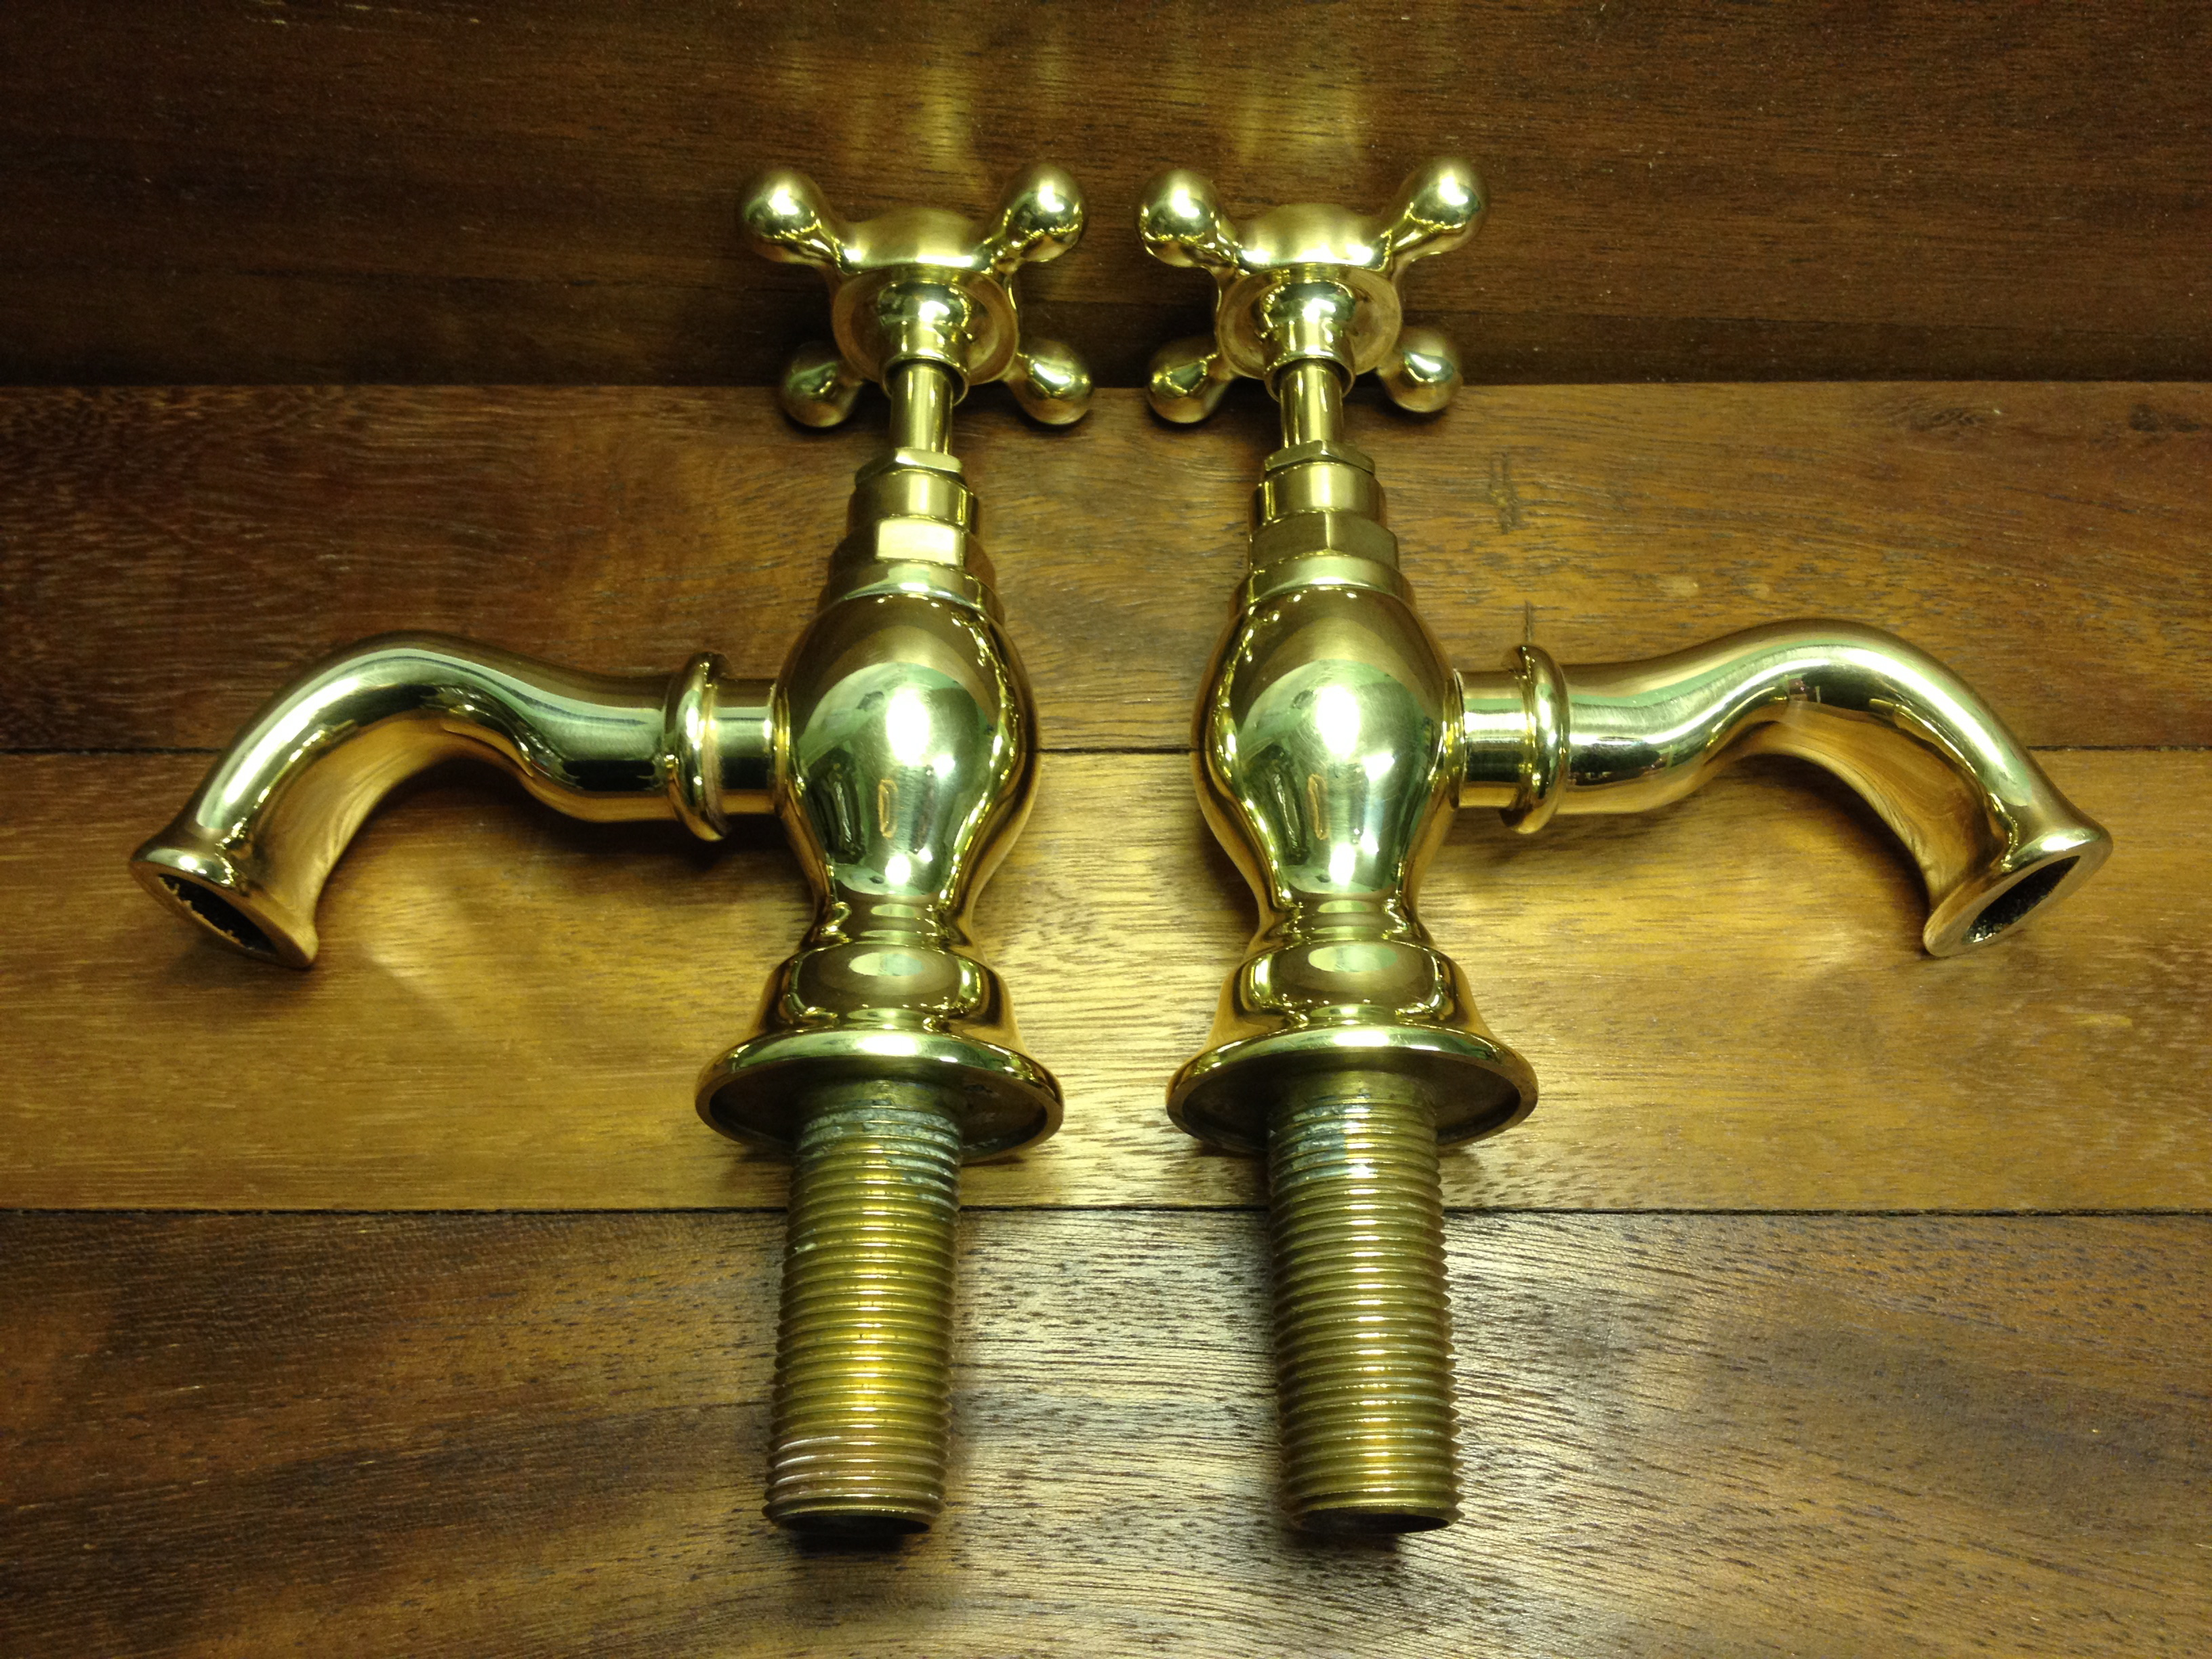 Curvaceous spouts on basin taps